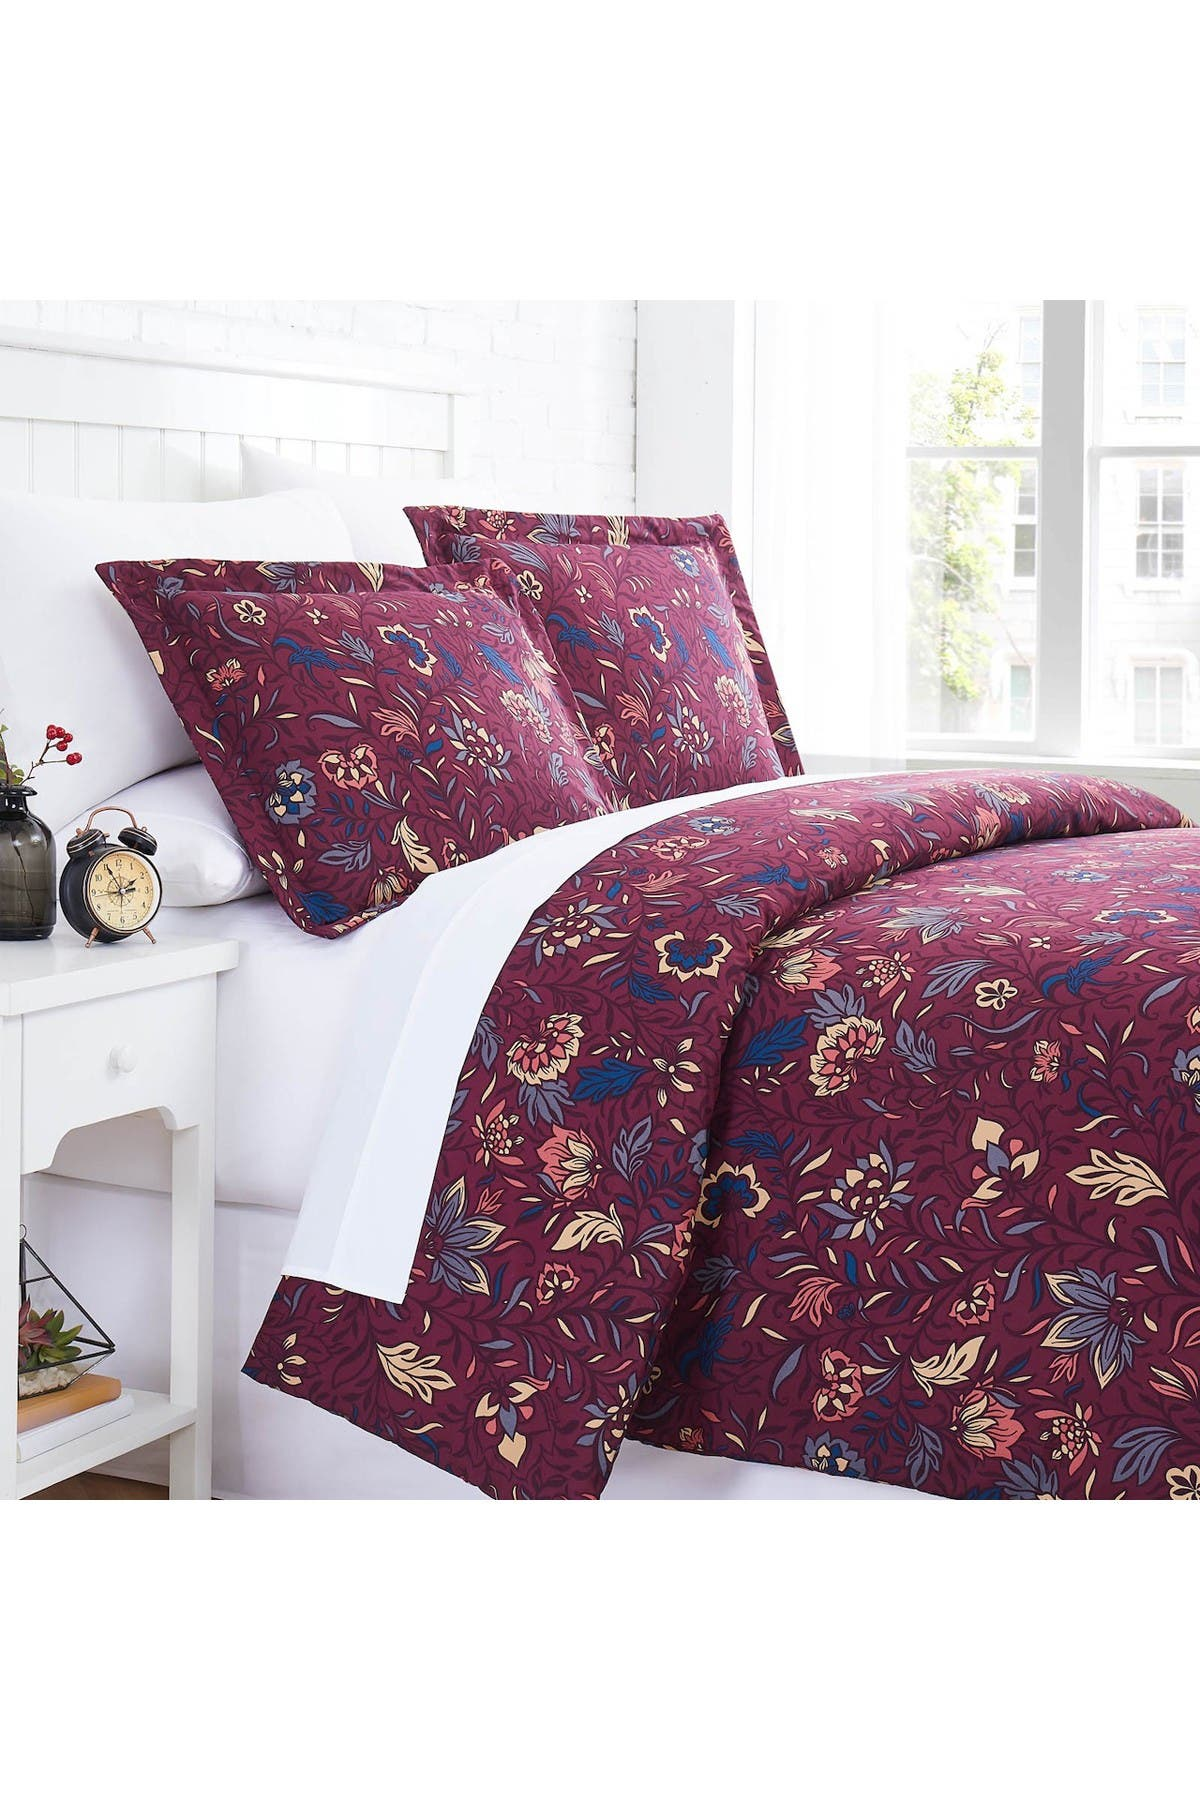 Image of SOUTHSHORE FINE LINENS Blooming Blossoms Duvet Cover Set - Red - King/California King